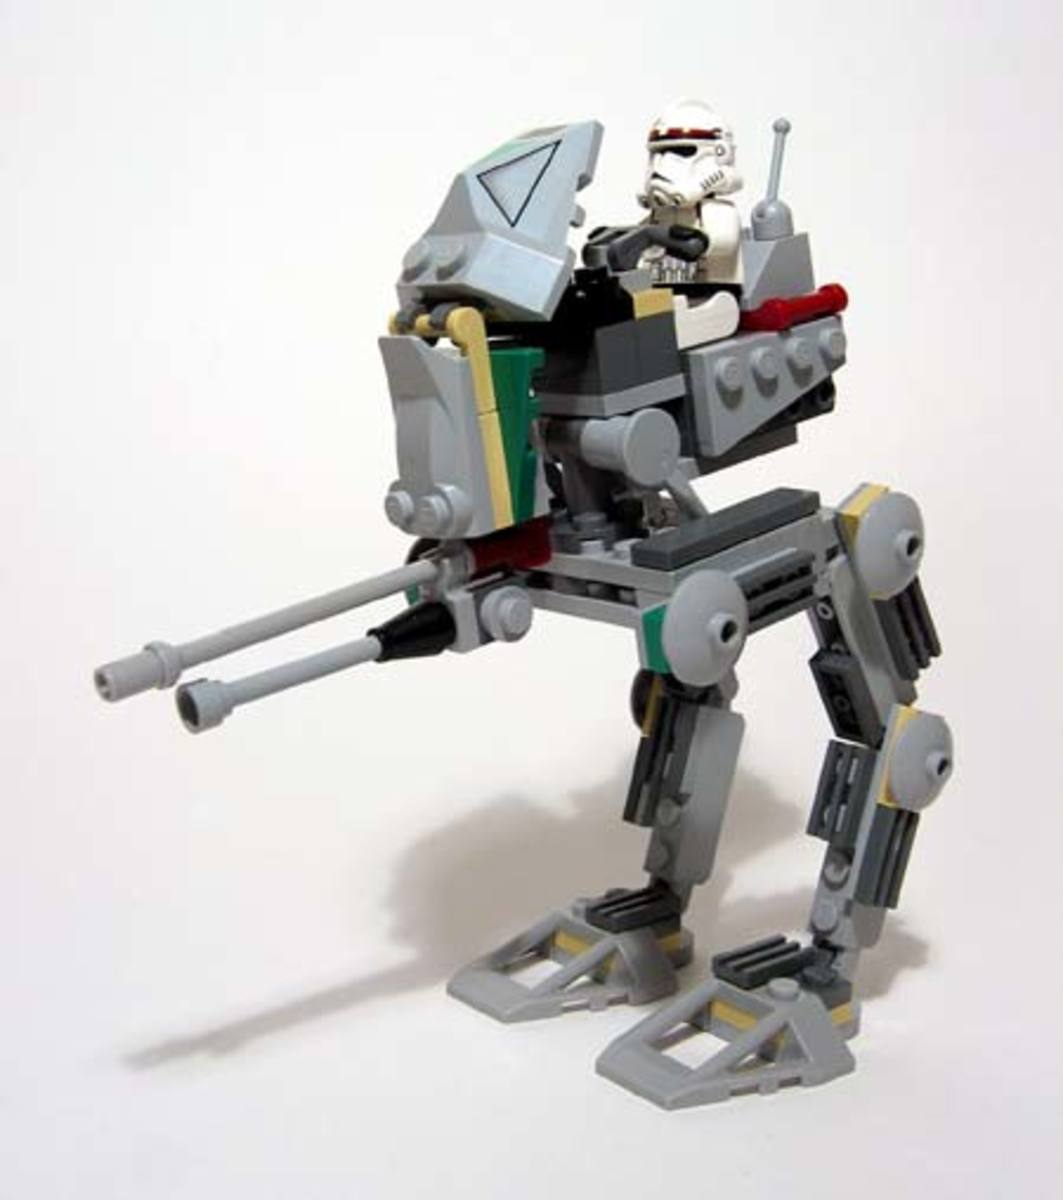 LEGO Star Wars Clone Scout Walker 7250 Assembled